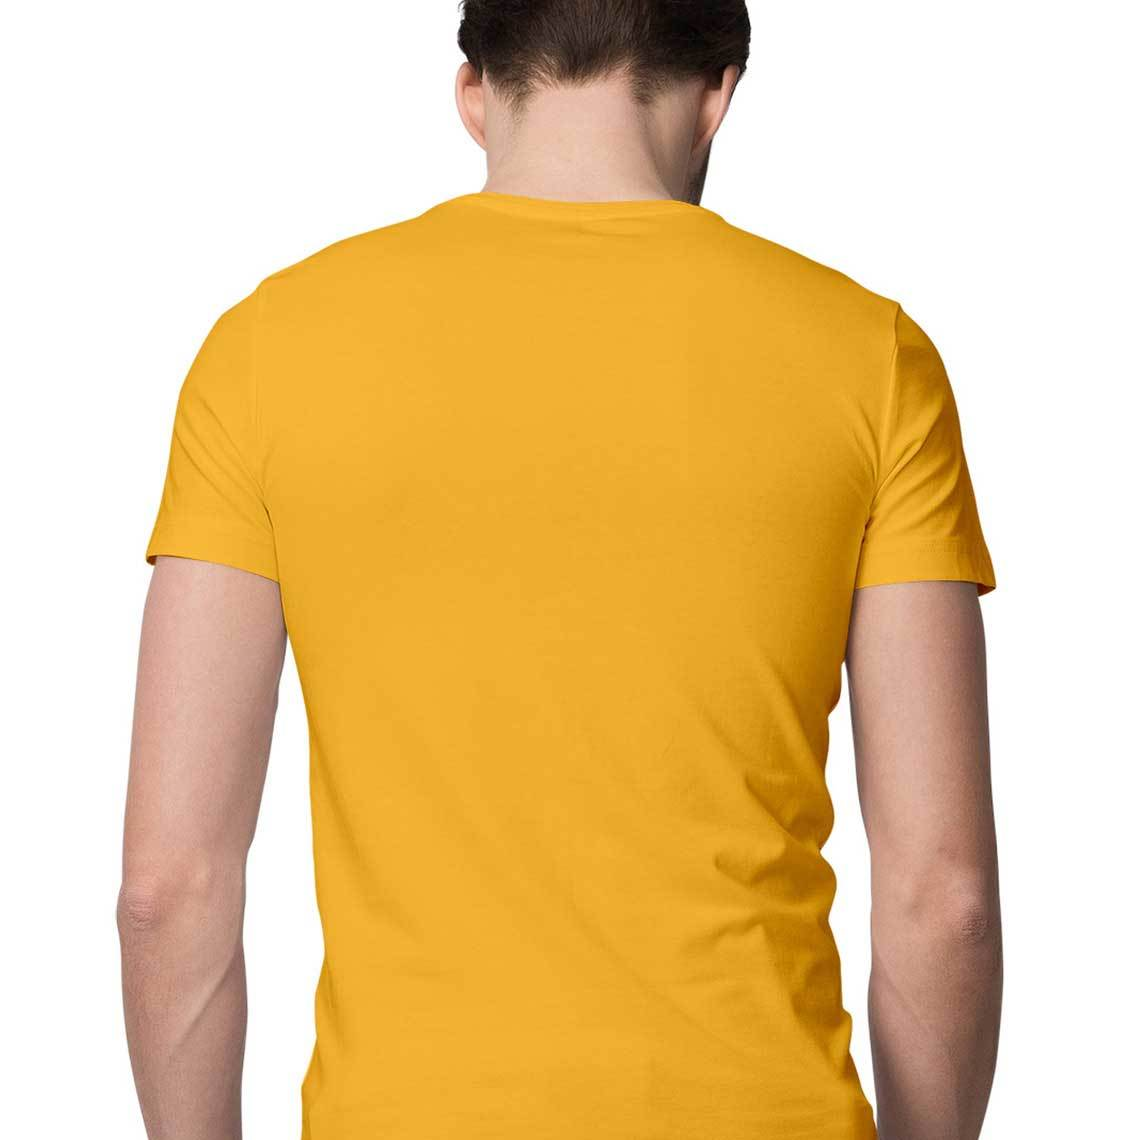 Men's Basics - Golden Yellow Half Sleeves Round Neck T-shirt